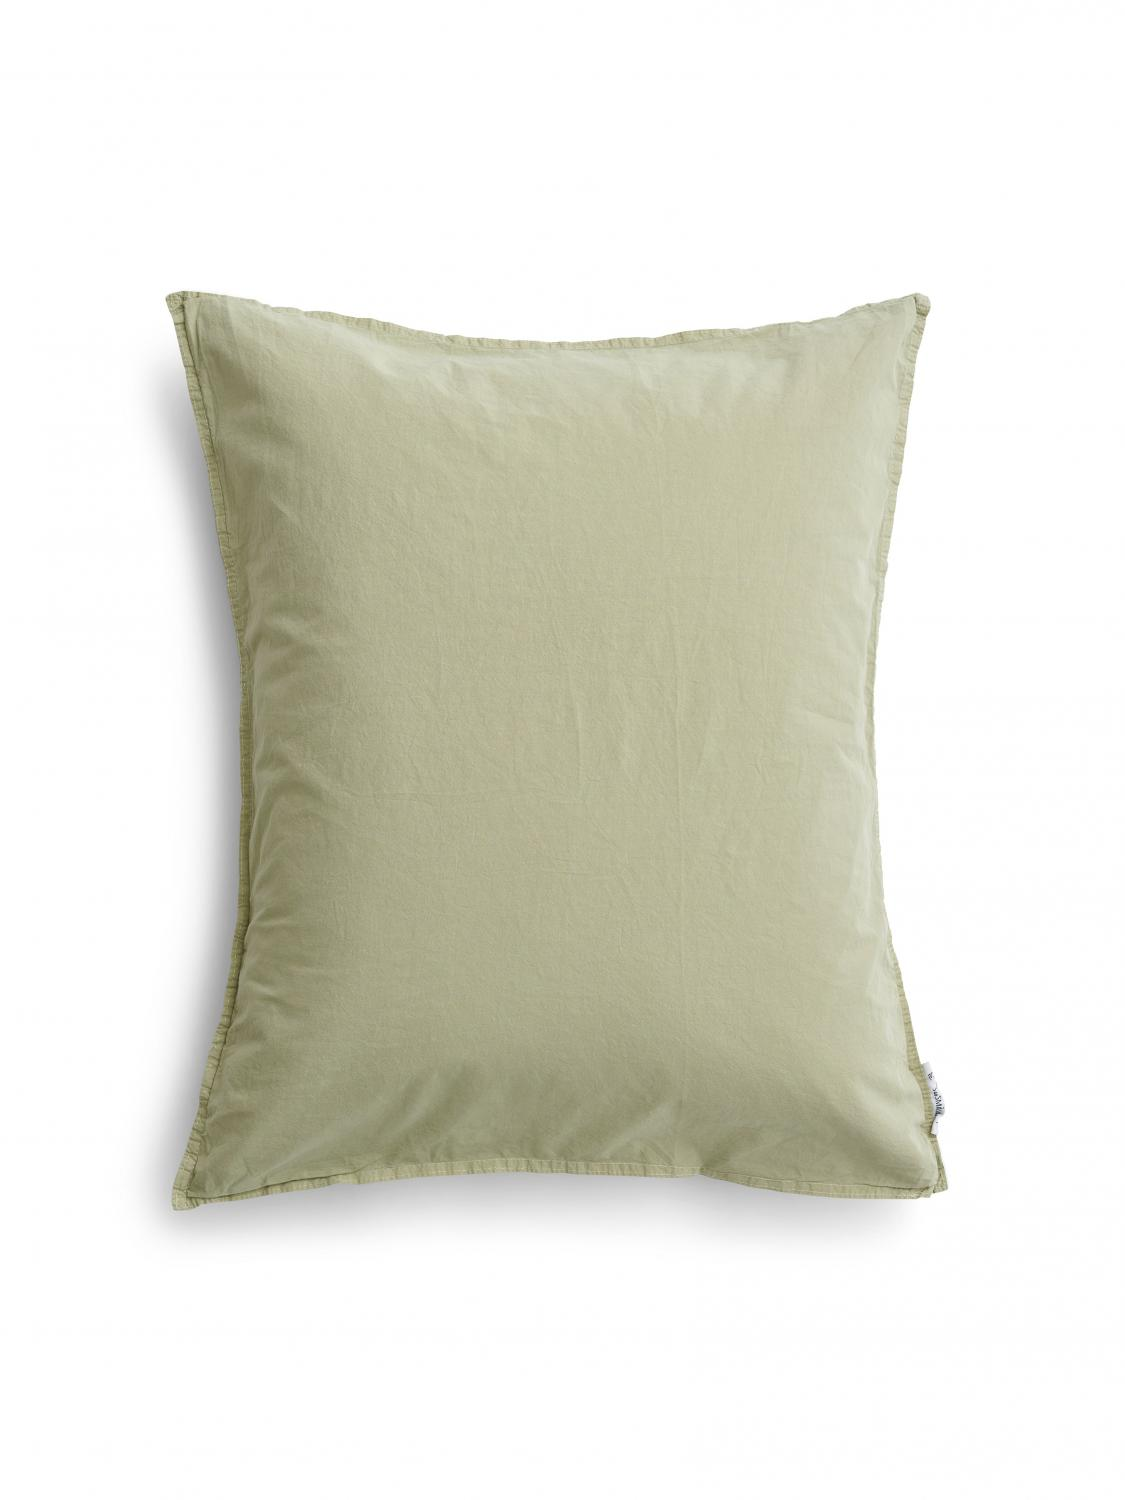 50x60cm Pillowcase Crinkle Green